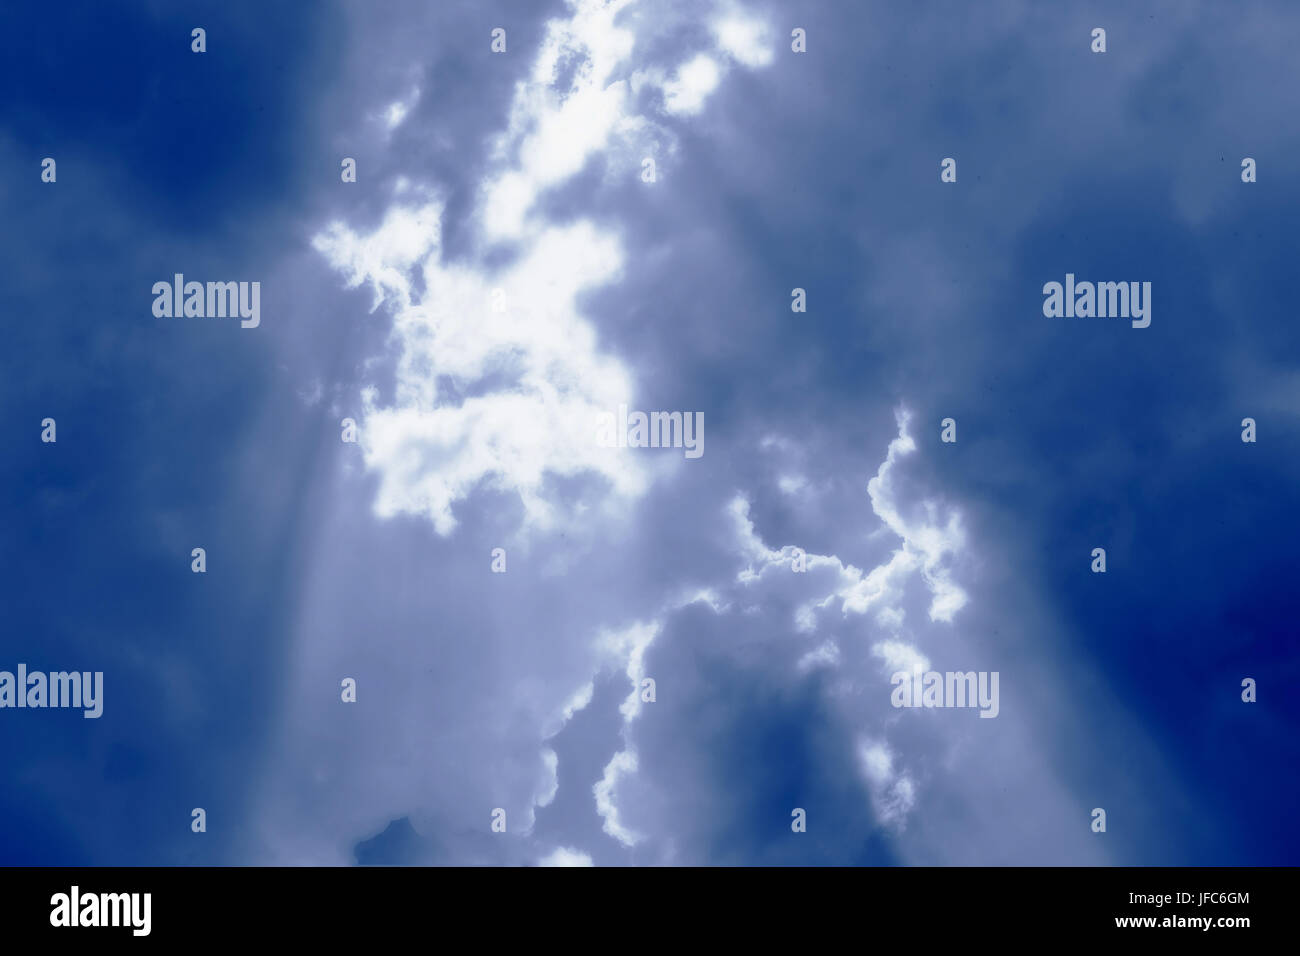 Abstract shadowy clouds picture - Stock Image